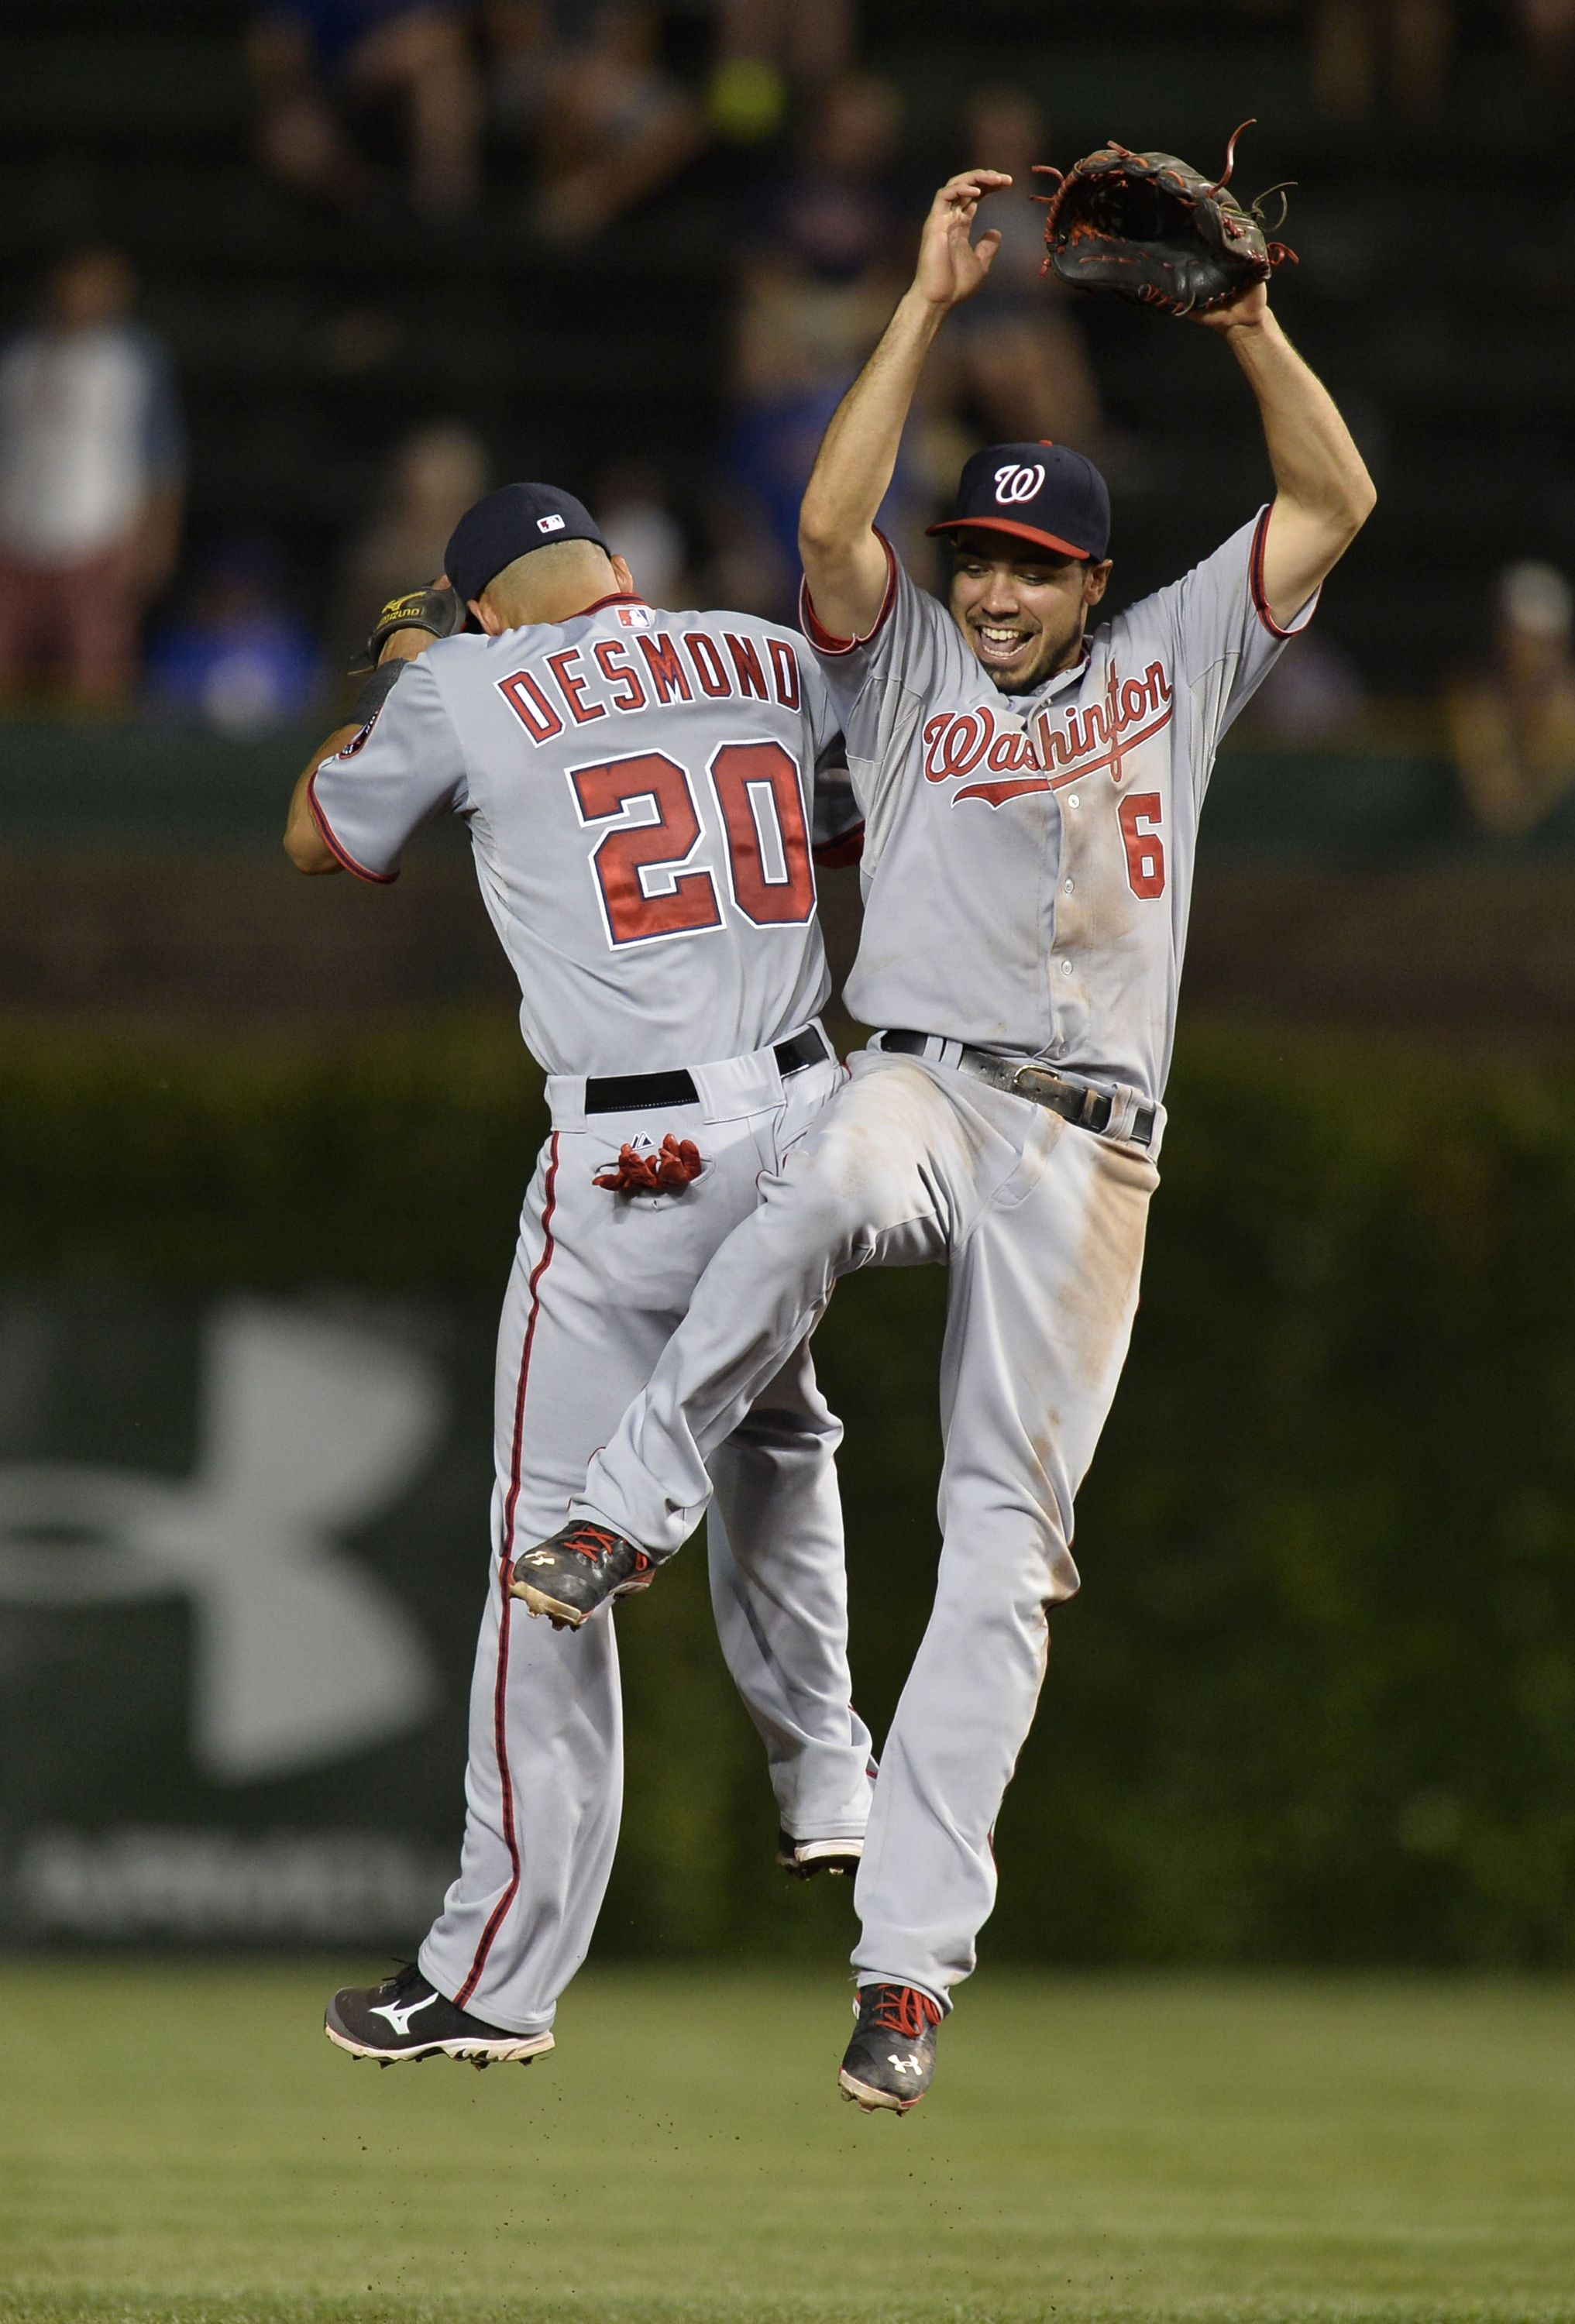 CHICAGO, IL - AUGUST 20: Ian Desmond #20 (L) and Anthony Rendon #6 of the Washington Nationals celebrate after defeating the Chicago Cubs 4-2 at Wrigley Field on August 20, 2013 in Chicago, Illinois. (Photo by Brian Kersey/Getty Images)